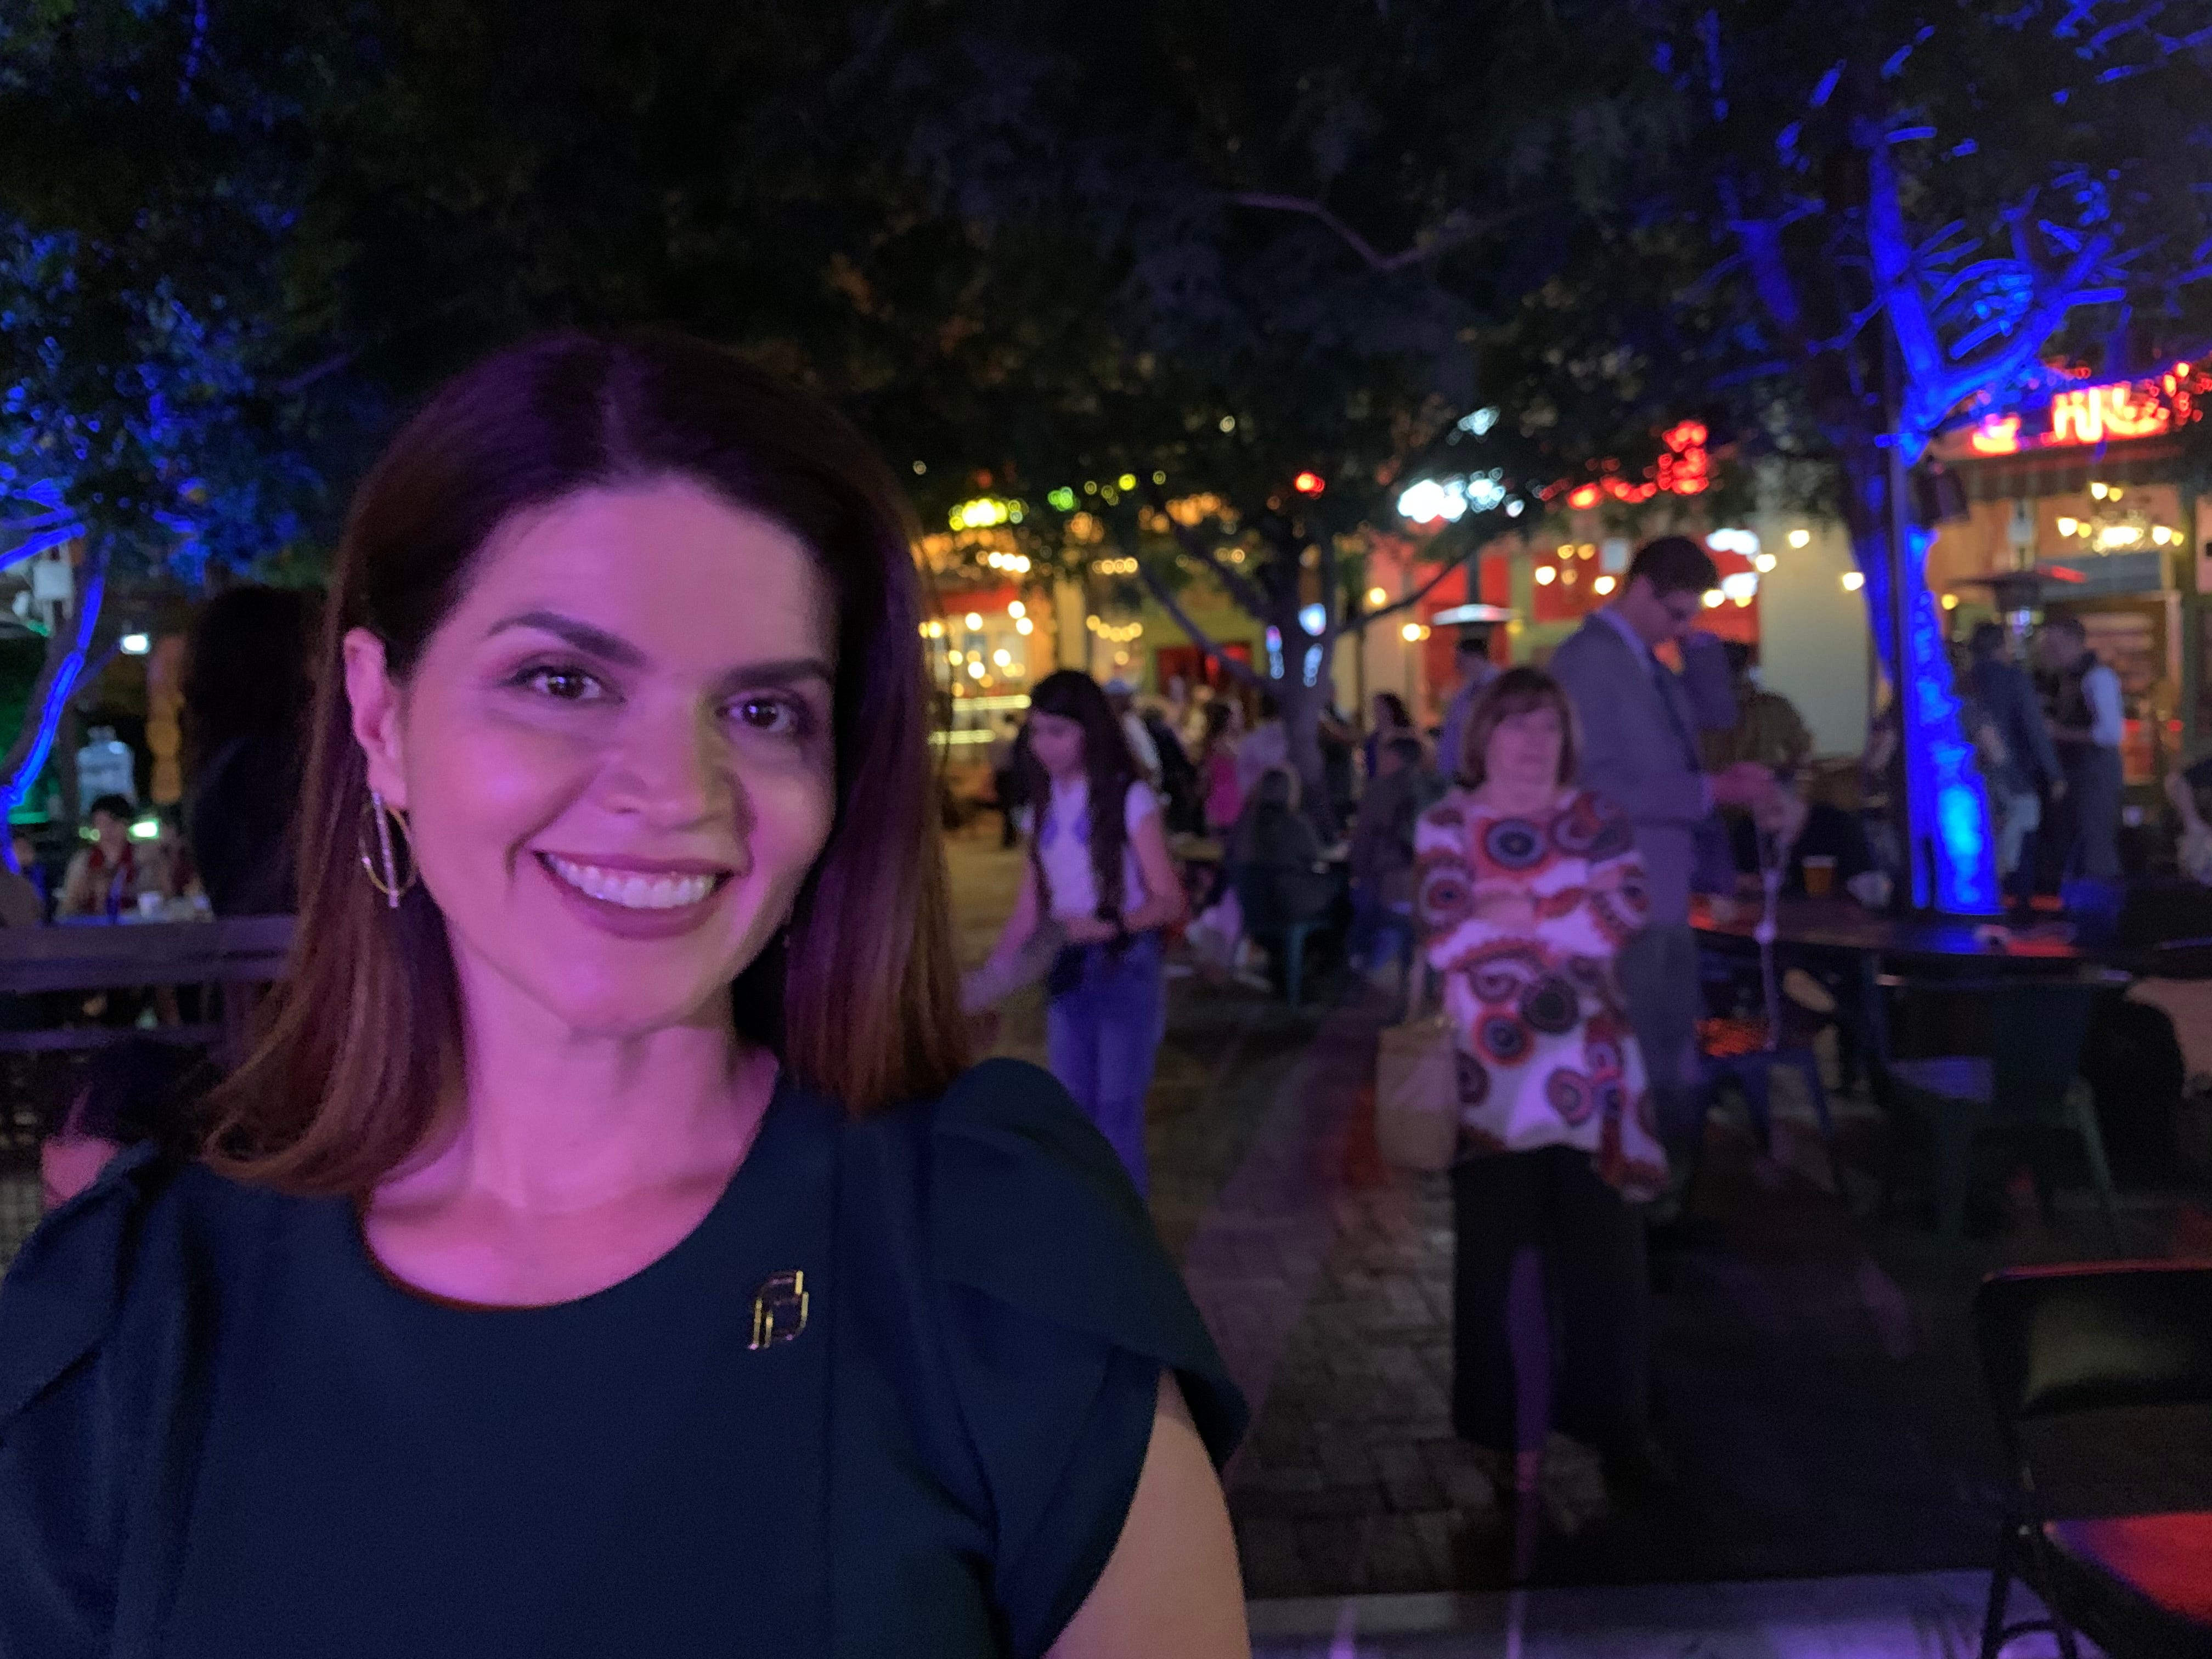 azcentral.com - Elvia Díaz, The Arizona Republic - Tucson's proposed curfew won't help stop COVID-19 if bars and restaurants remain open